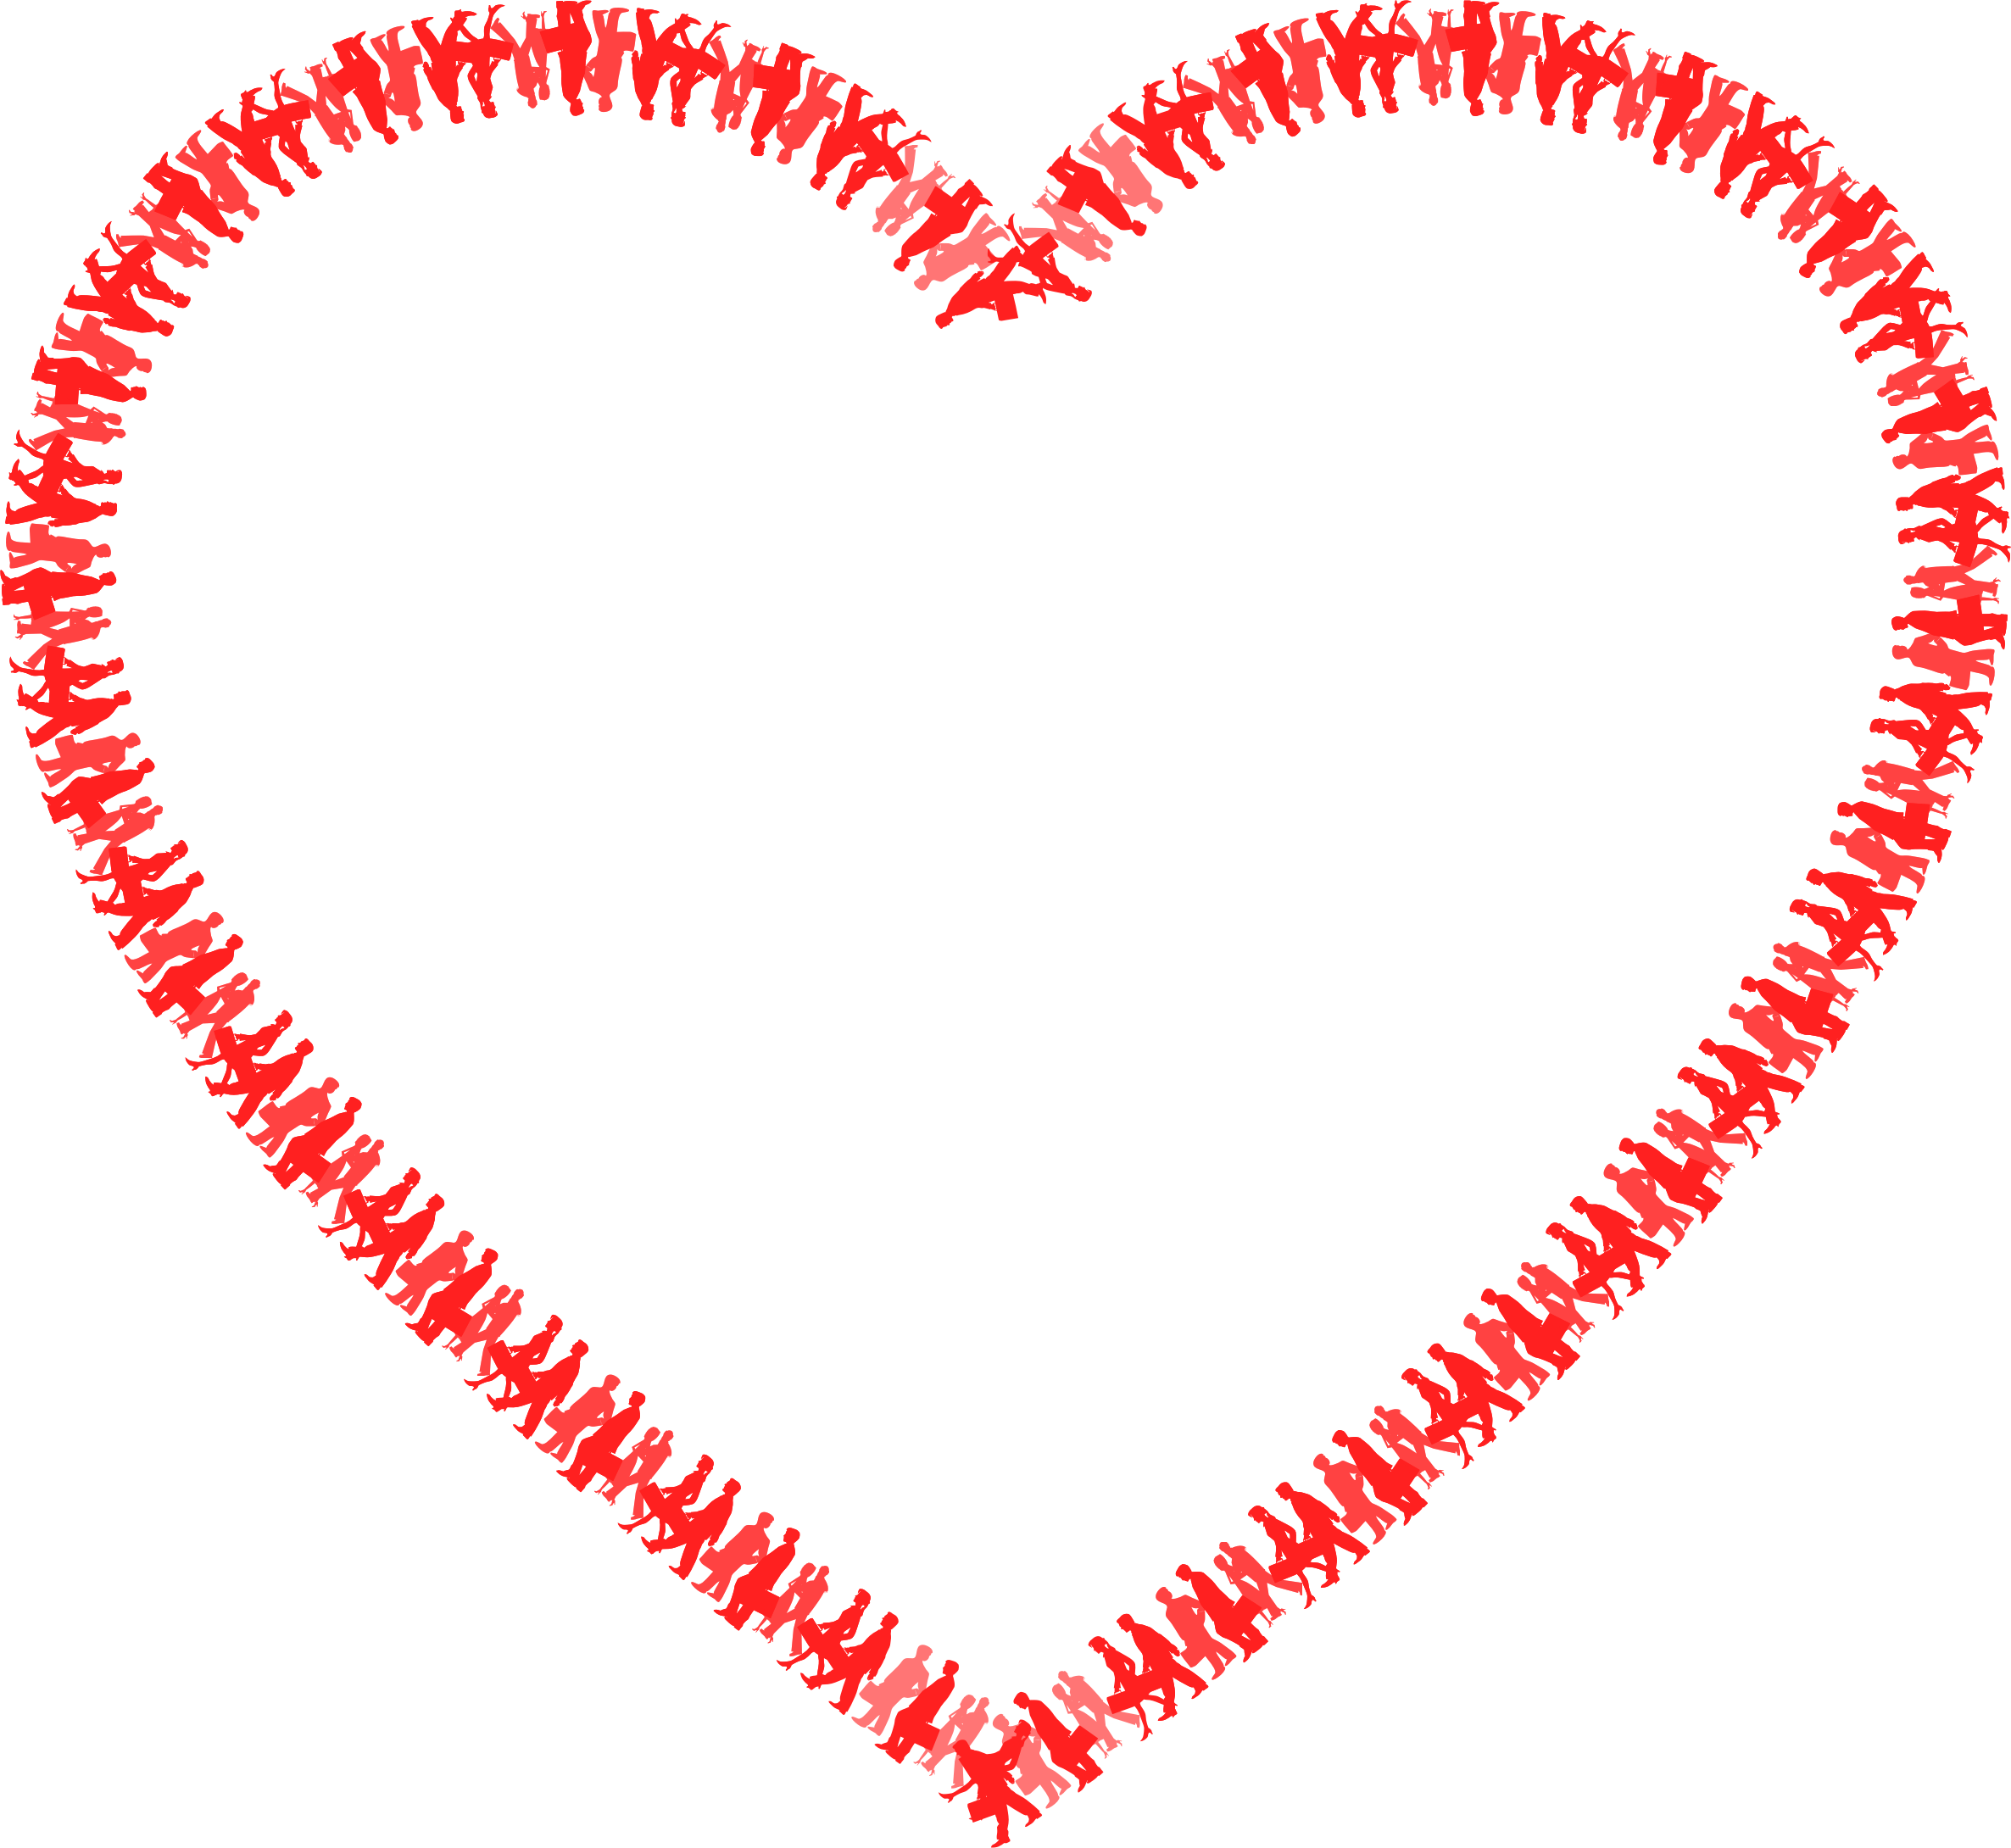 Heart people clipart clip free download Clipart - People Heart clip free download